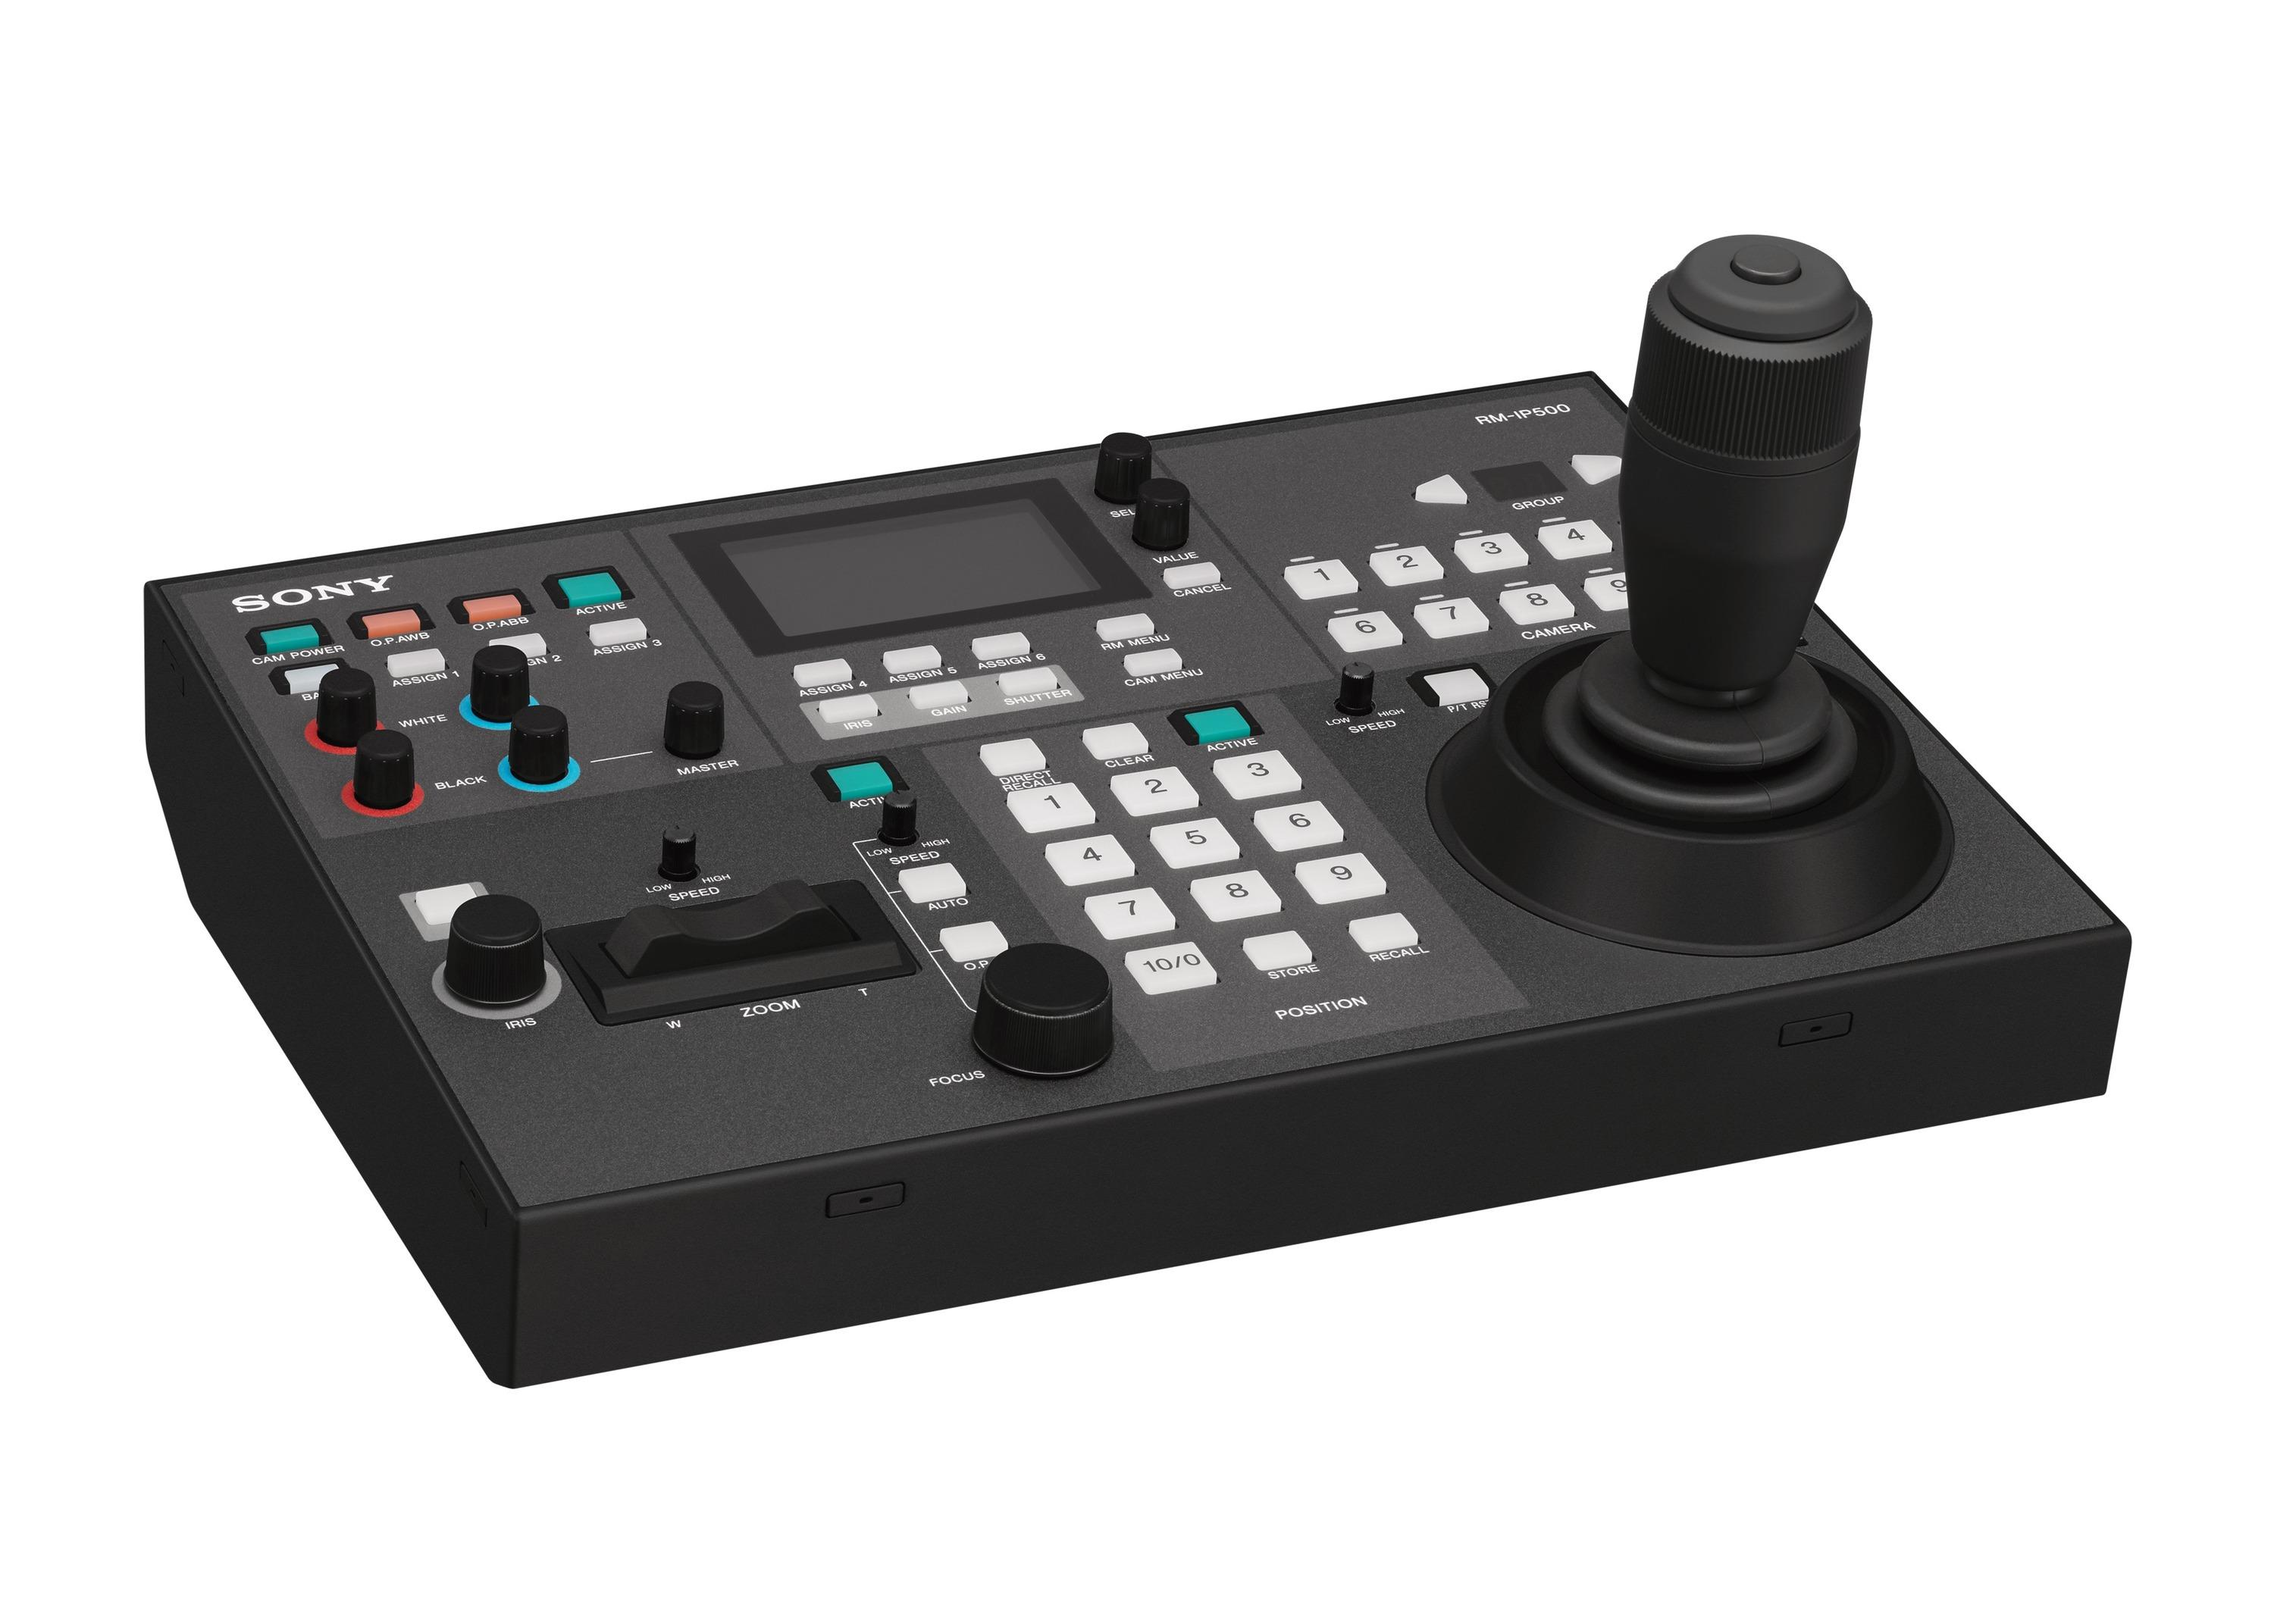 Sony S Rm Ip500 Remote Controller Delivers Greater